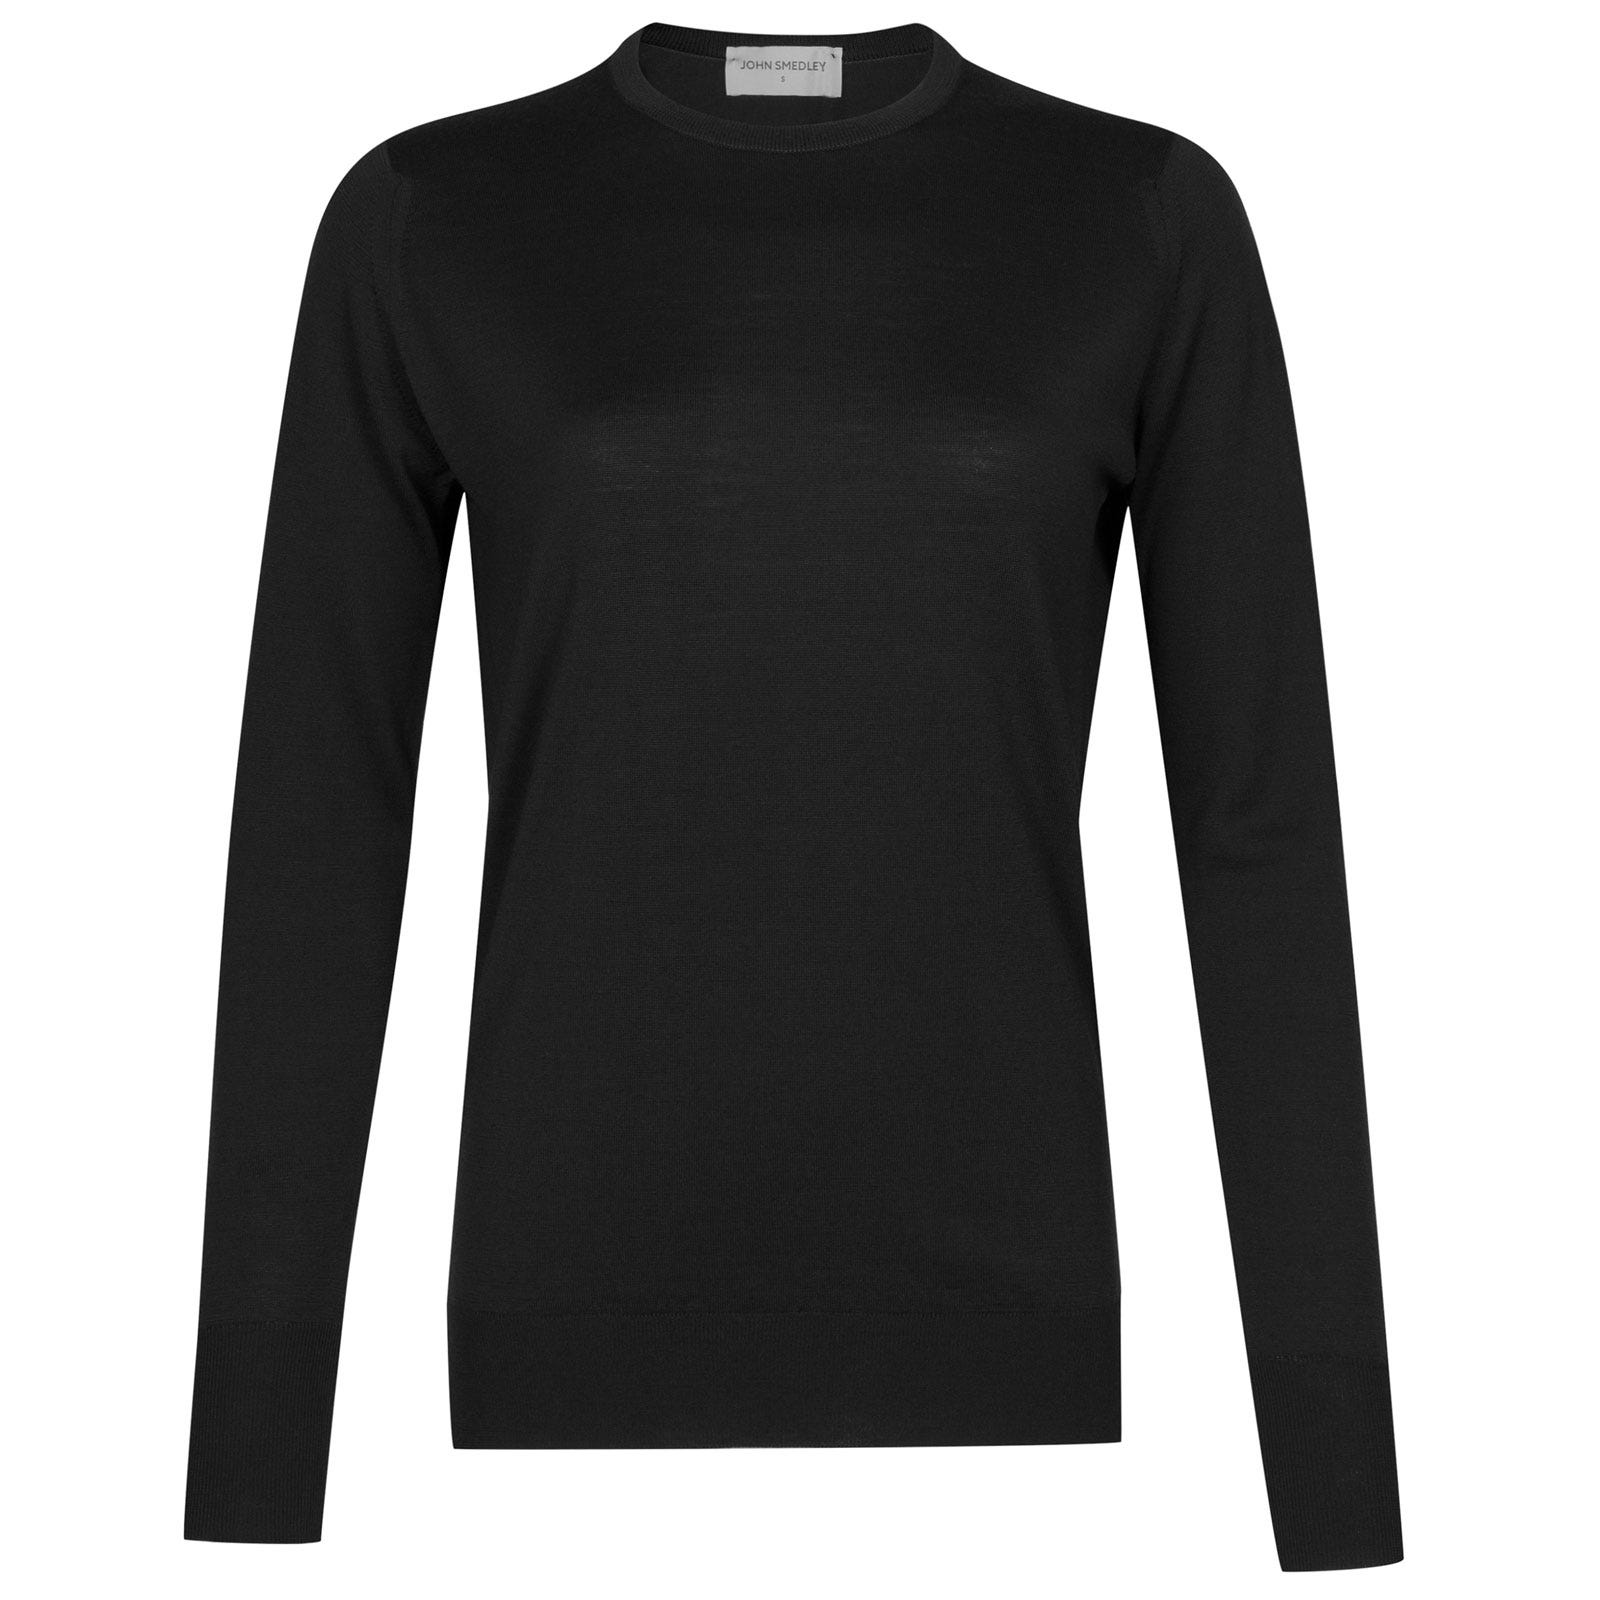 John Smedley Mitzi Merino Wool Sweater in Black-XL